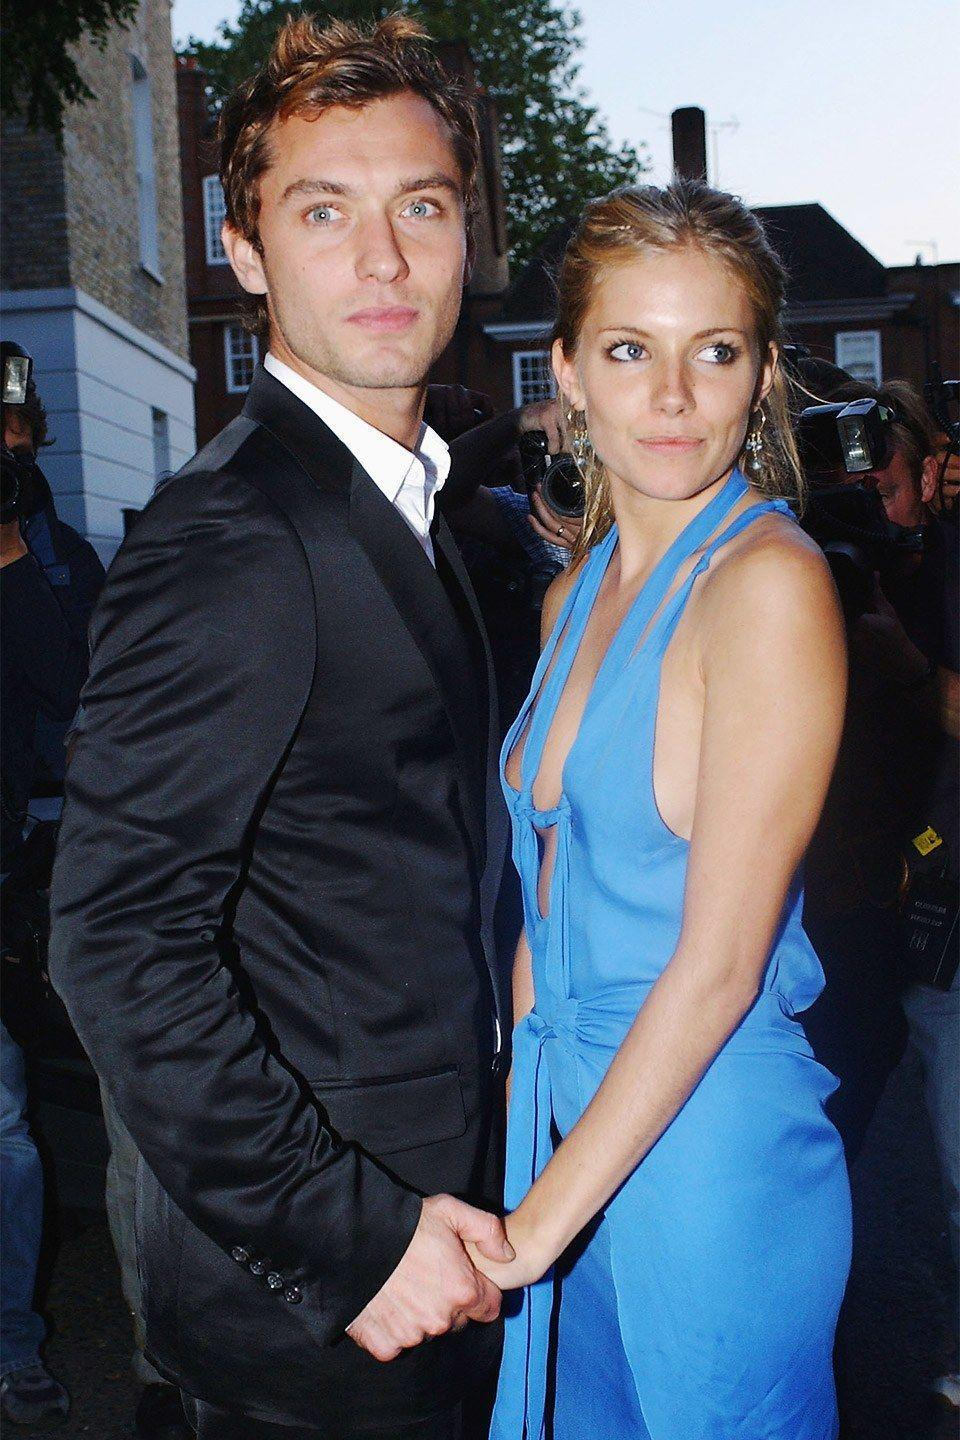 """<p>The actors met on the set of <em>Alfie </em><span class=""""redactor-invisible-space"""">in 2004 and took their romance off-screen, getting engaged on Christmas Day of that year. In July 2005, Law admitted to having an affair with the nanny of his children and the couple <a href=""""http://people.com/celebrity/jude-law-and-sienna-miller-call-it-quits/"""" rel=""""nofollow noopener"""" target=""""_blank"""" data-ylk=""""slk:split up"""" class=""""link rapid-noclick-resp"""">split up</a> in 2006. </span></p>"""